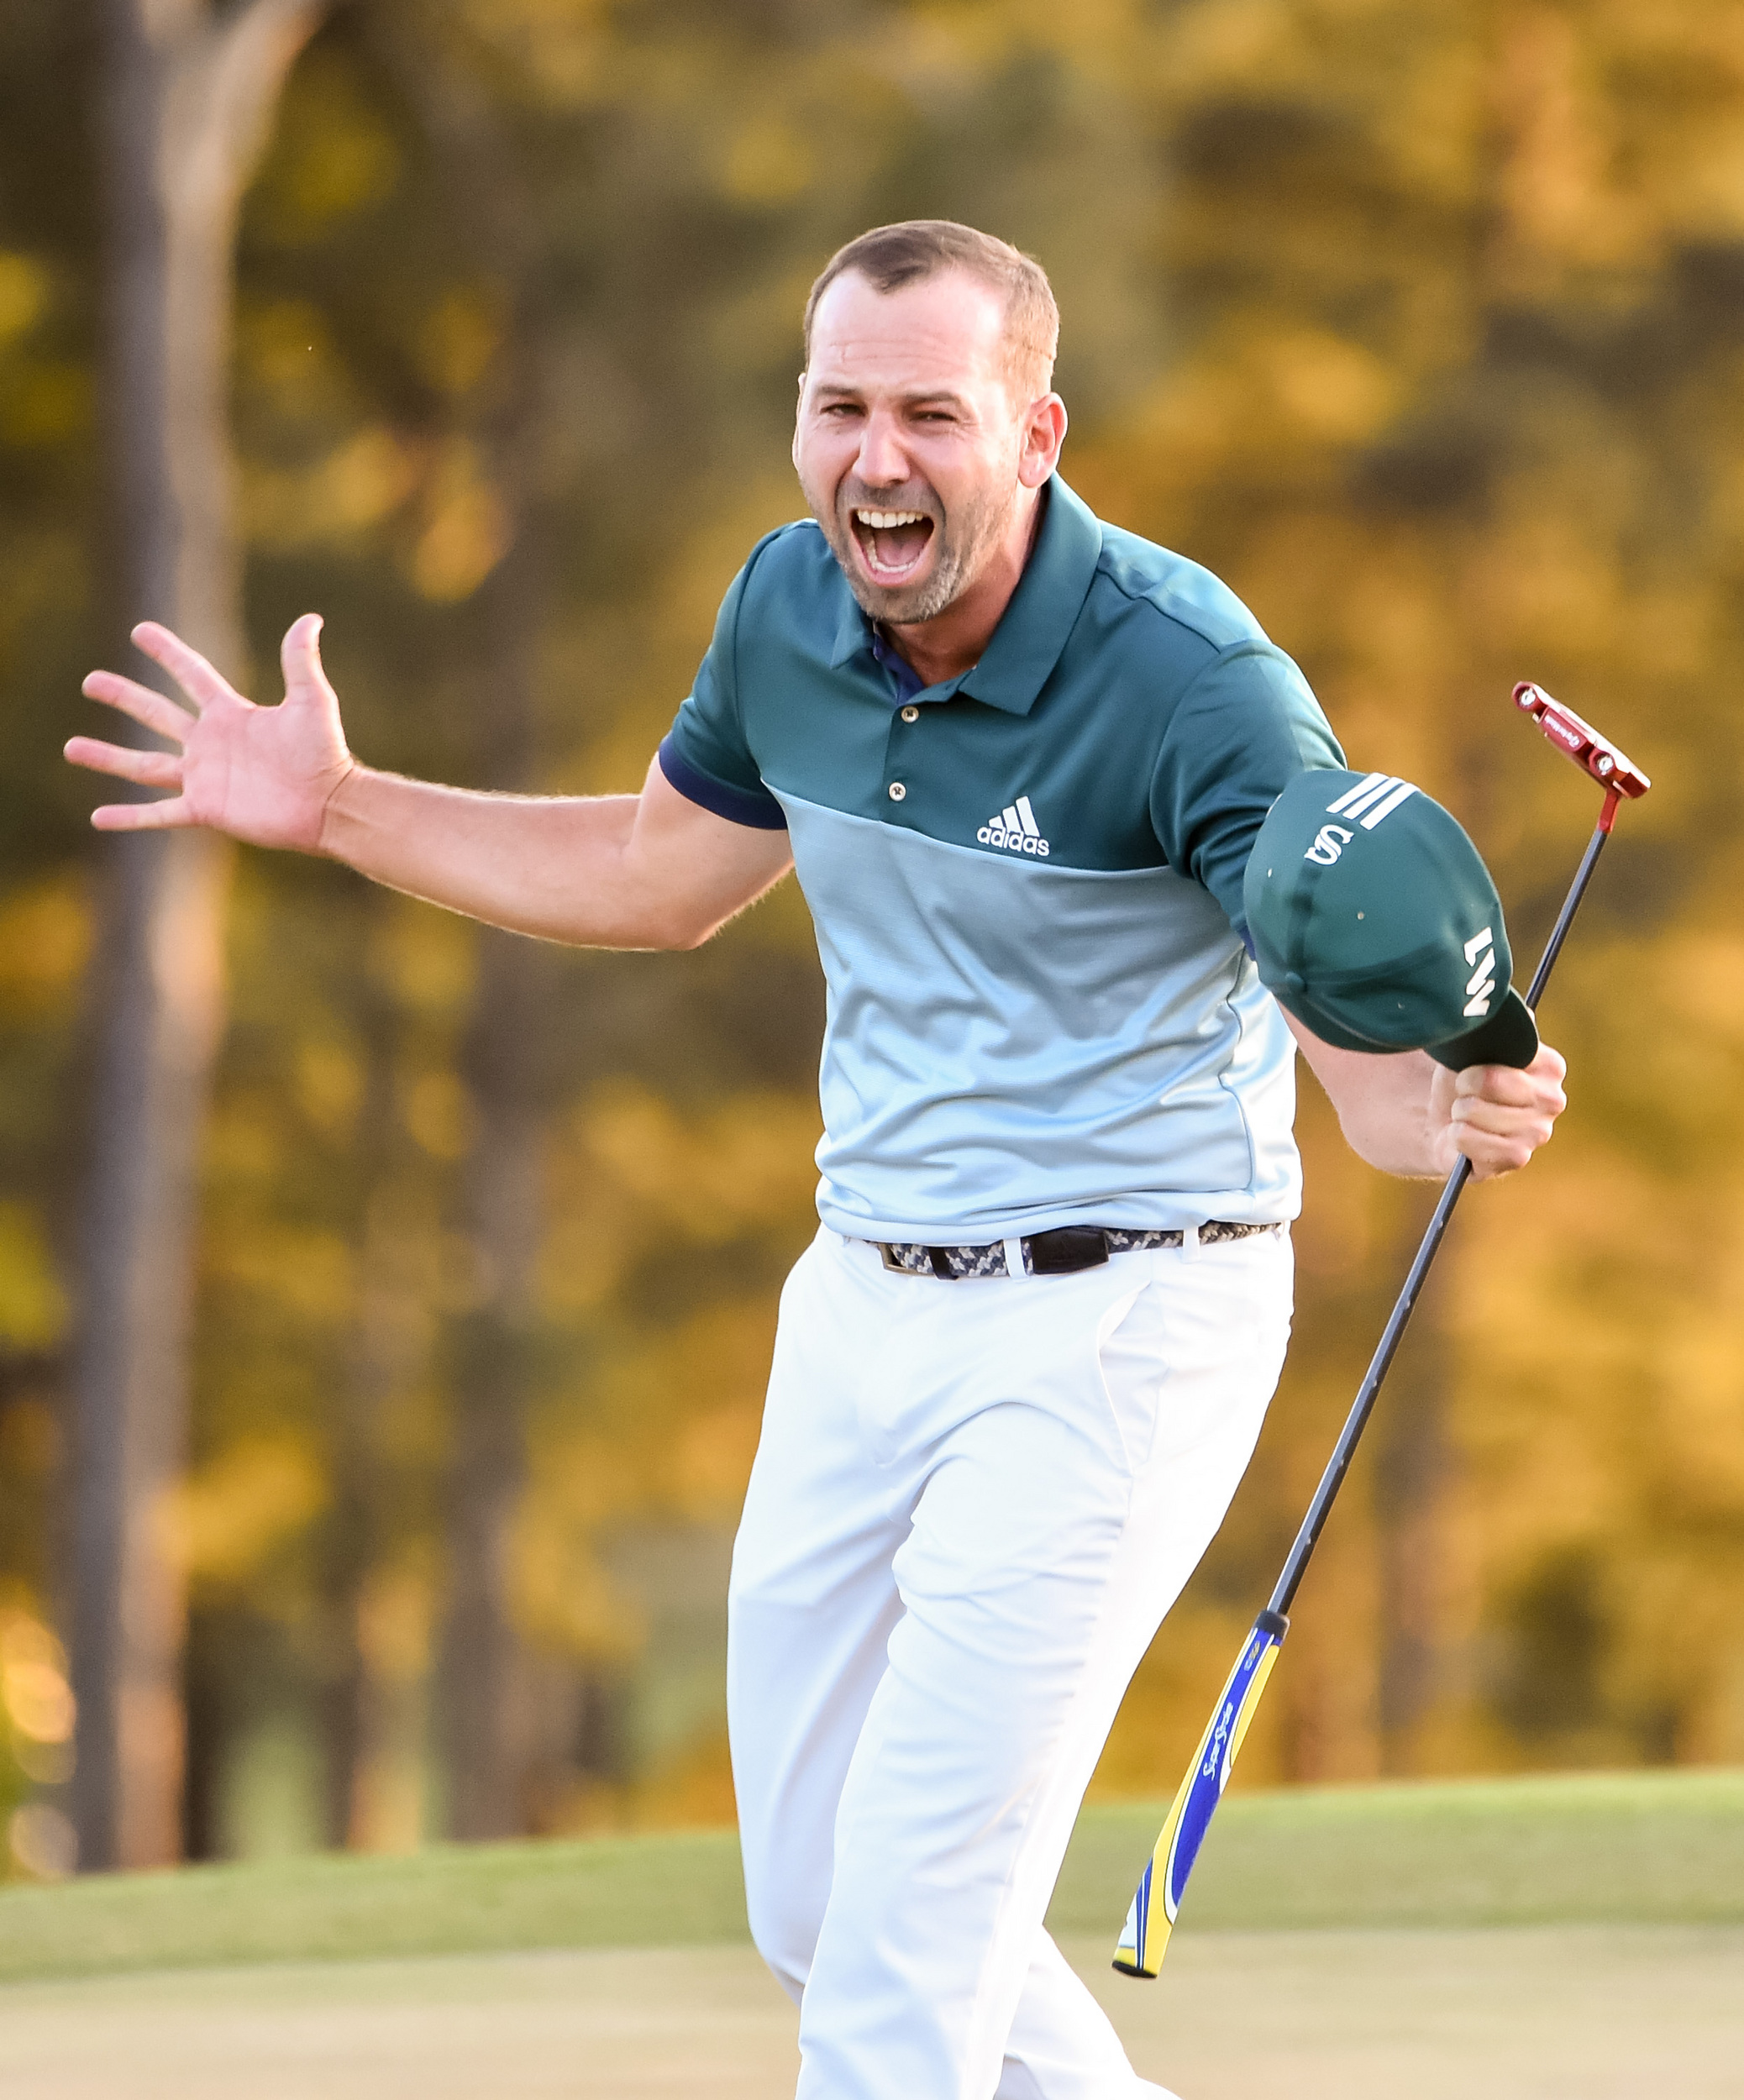 Sergio Garcia finally mastered his love/hate relationship with Augusta